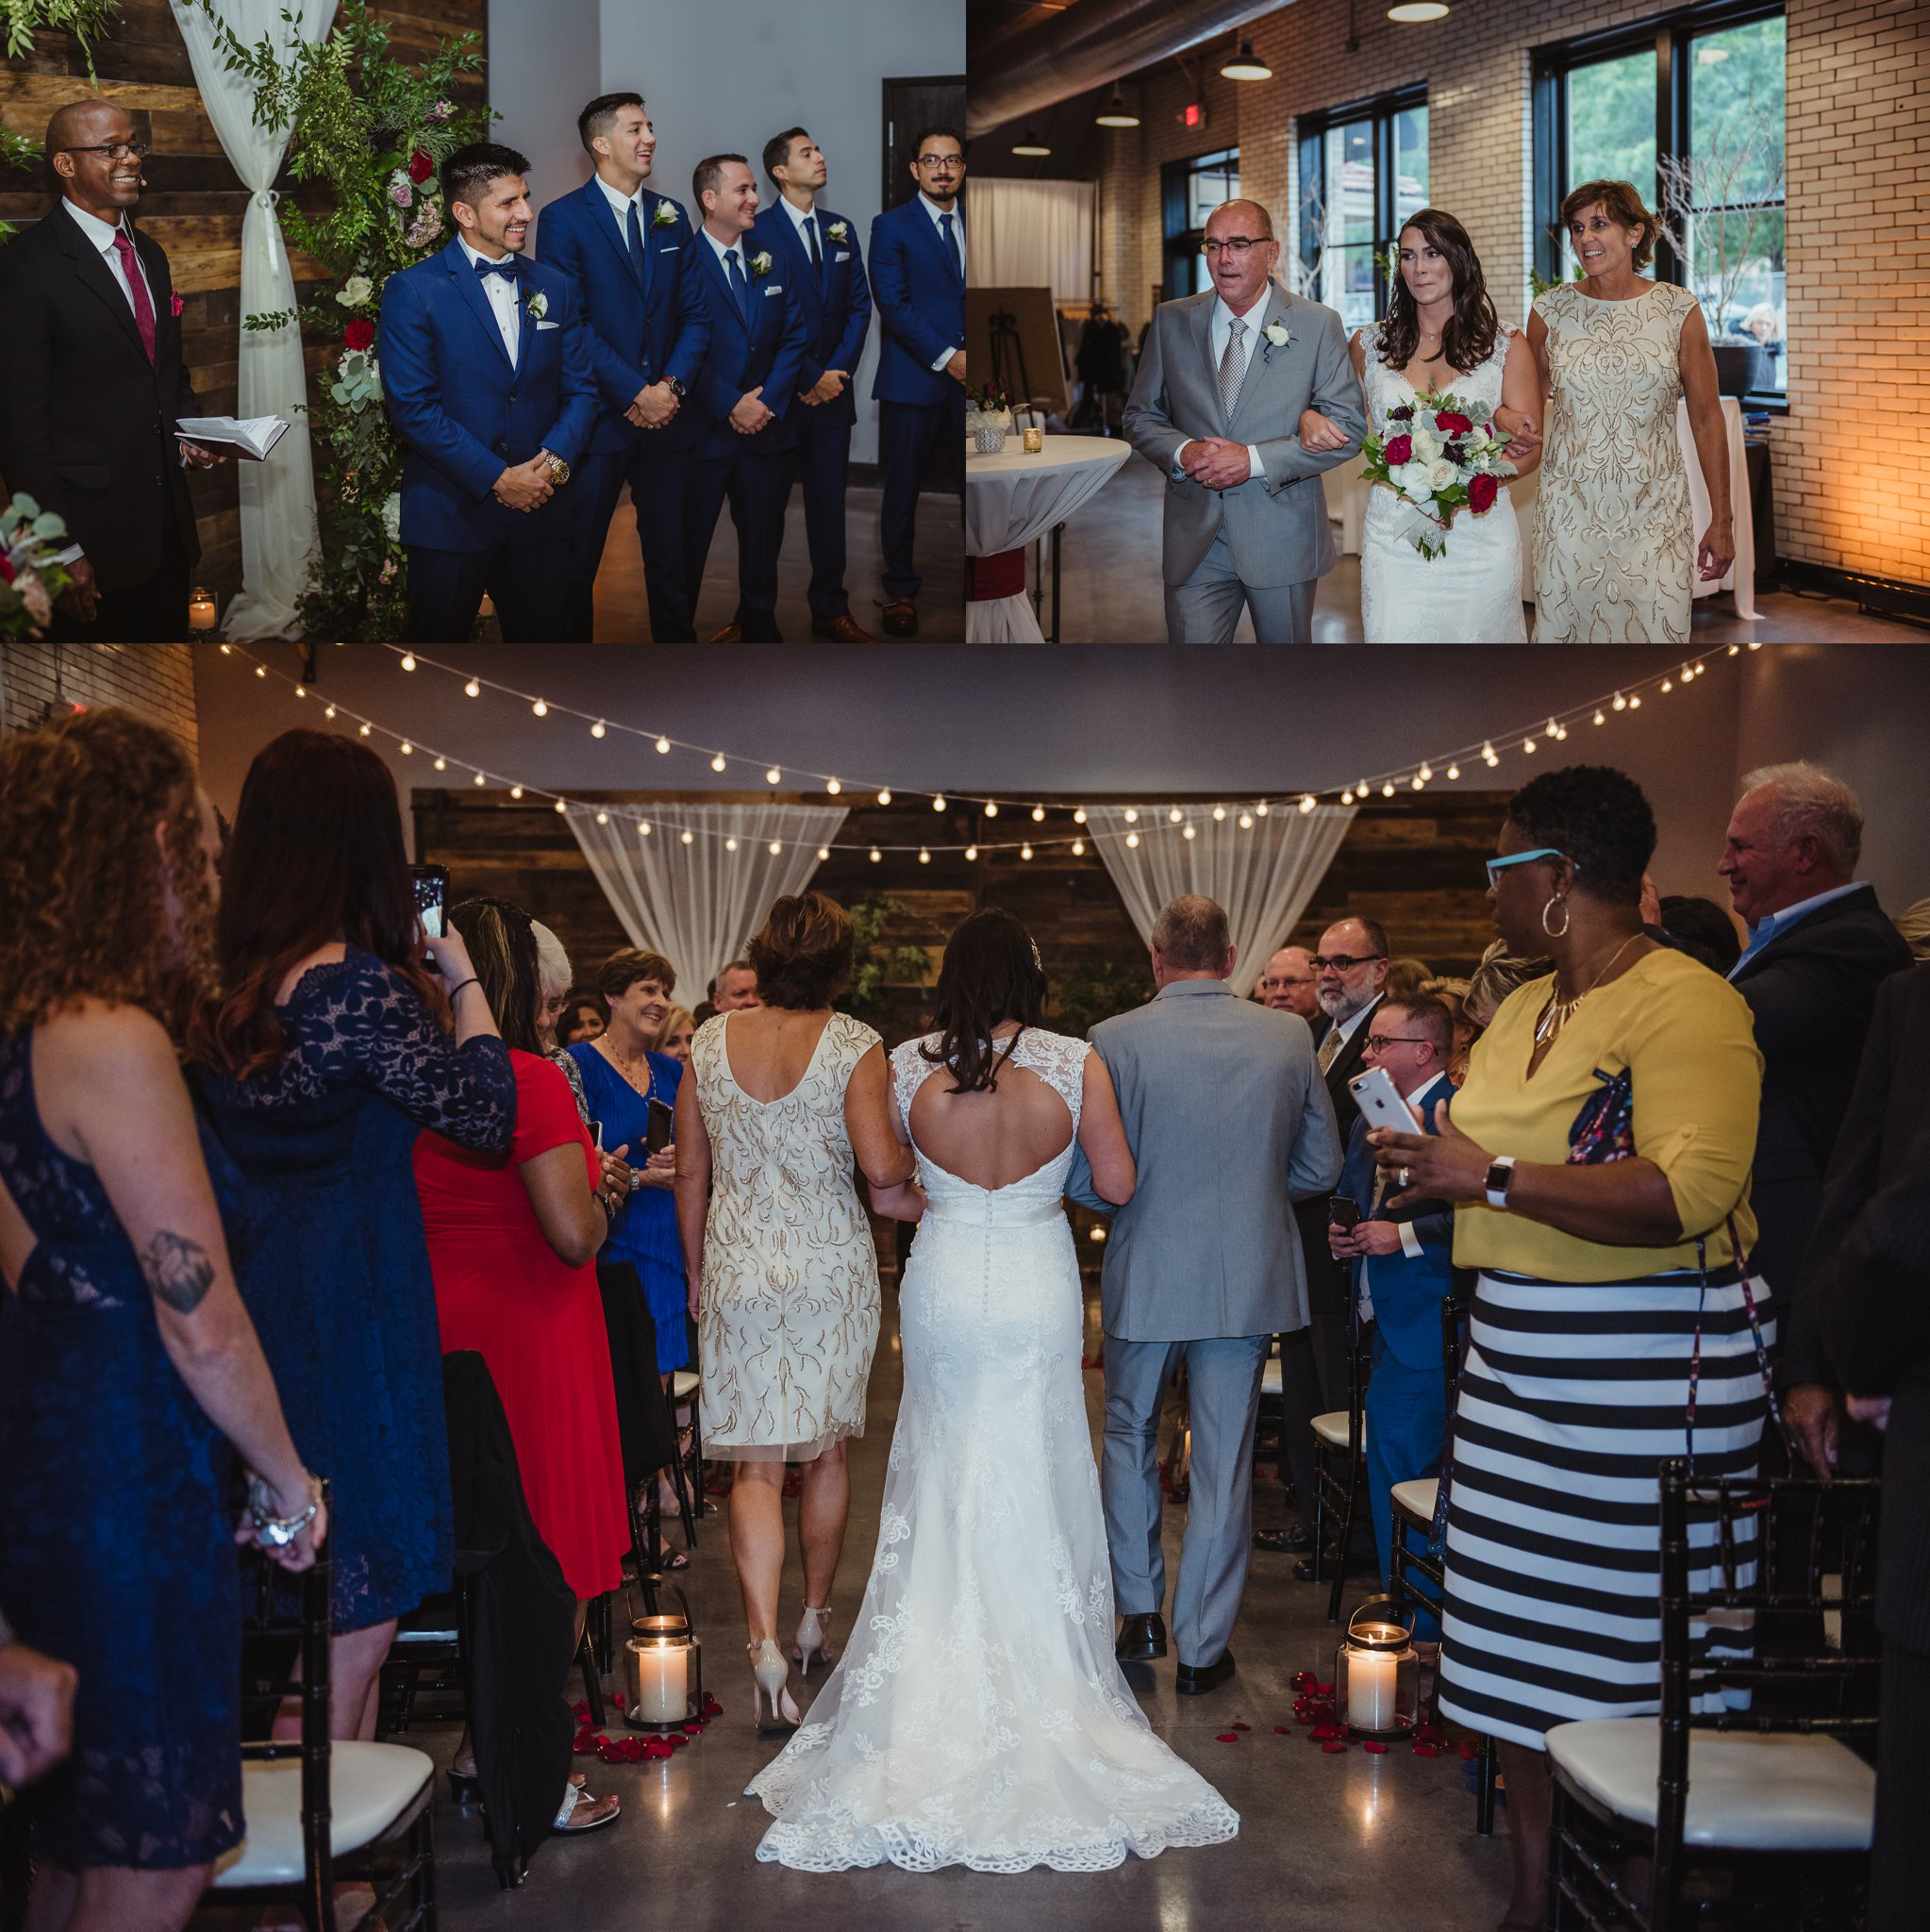 The bride and groom seeing each other for the first time at their wedding ceremony in downtown Raleigh, photos by Rose Trail Images.